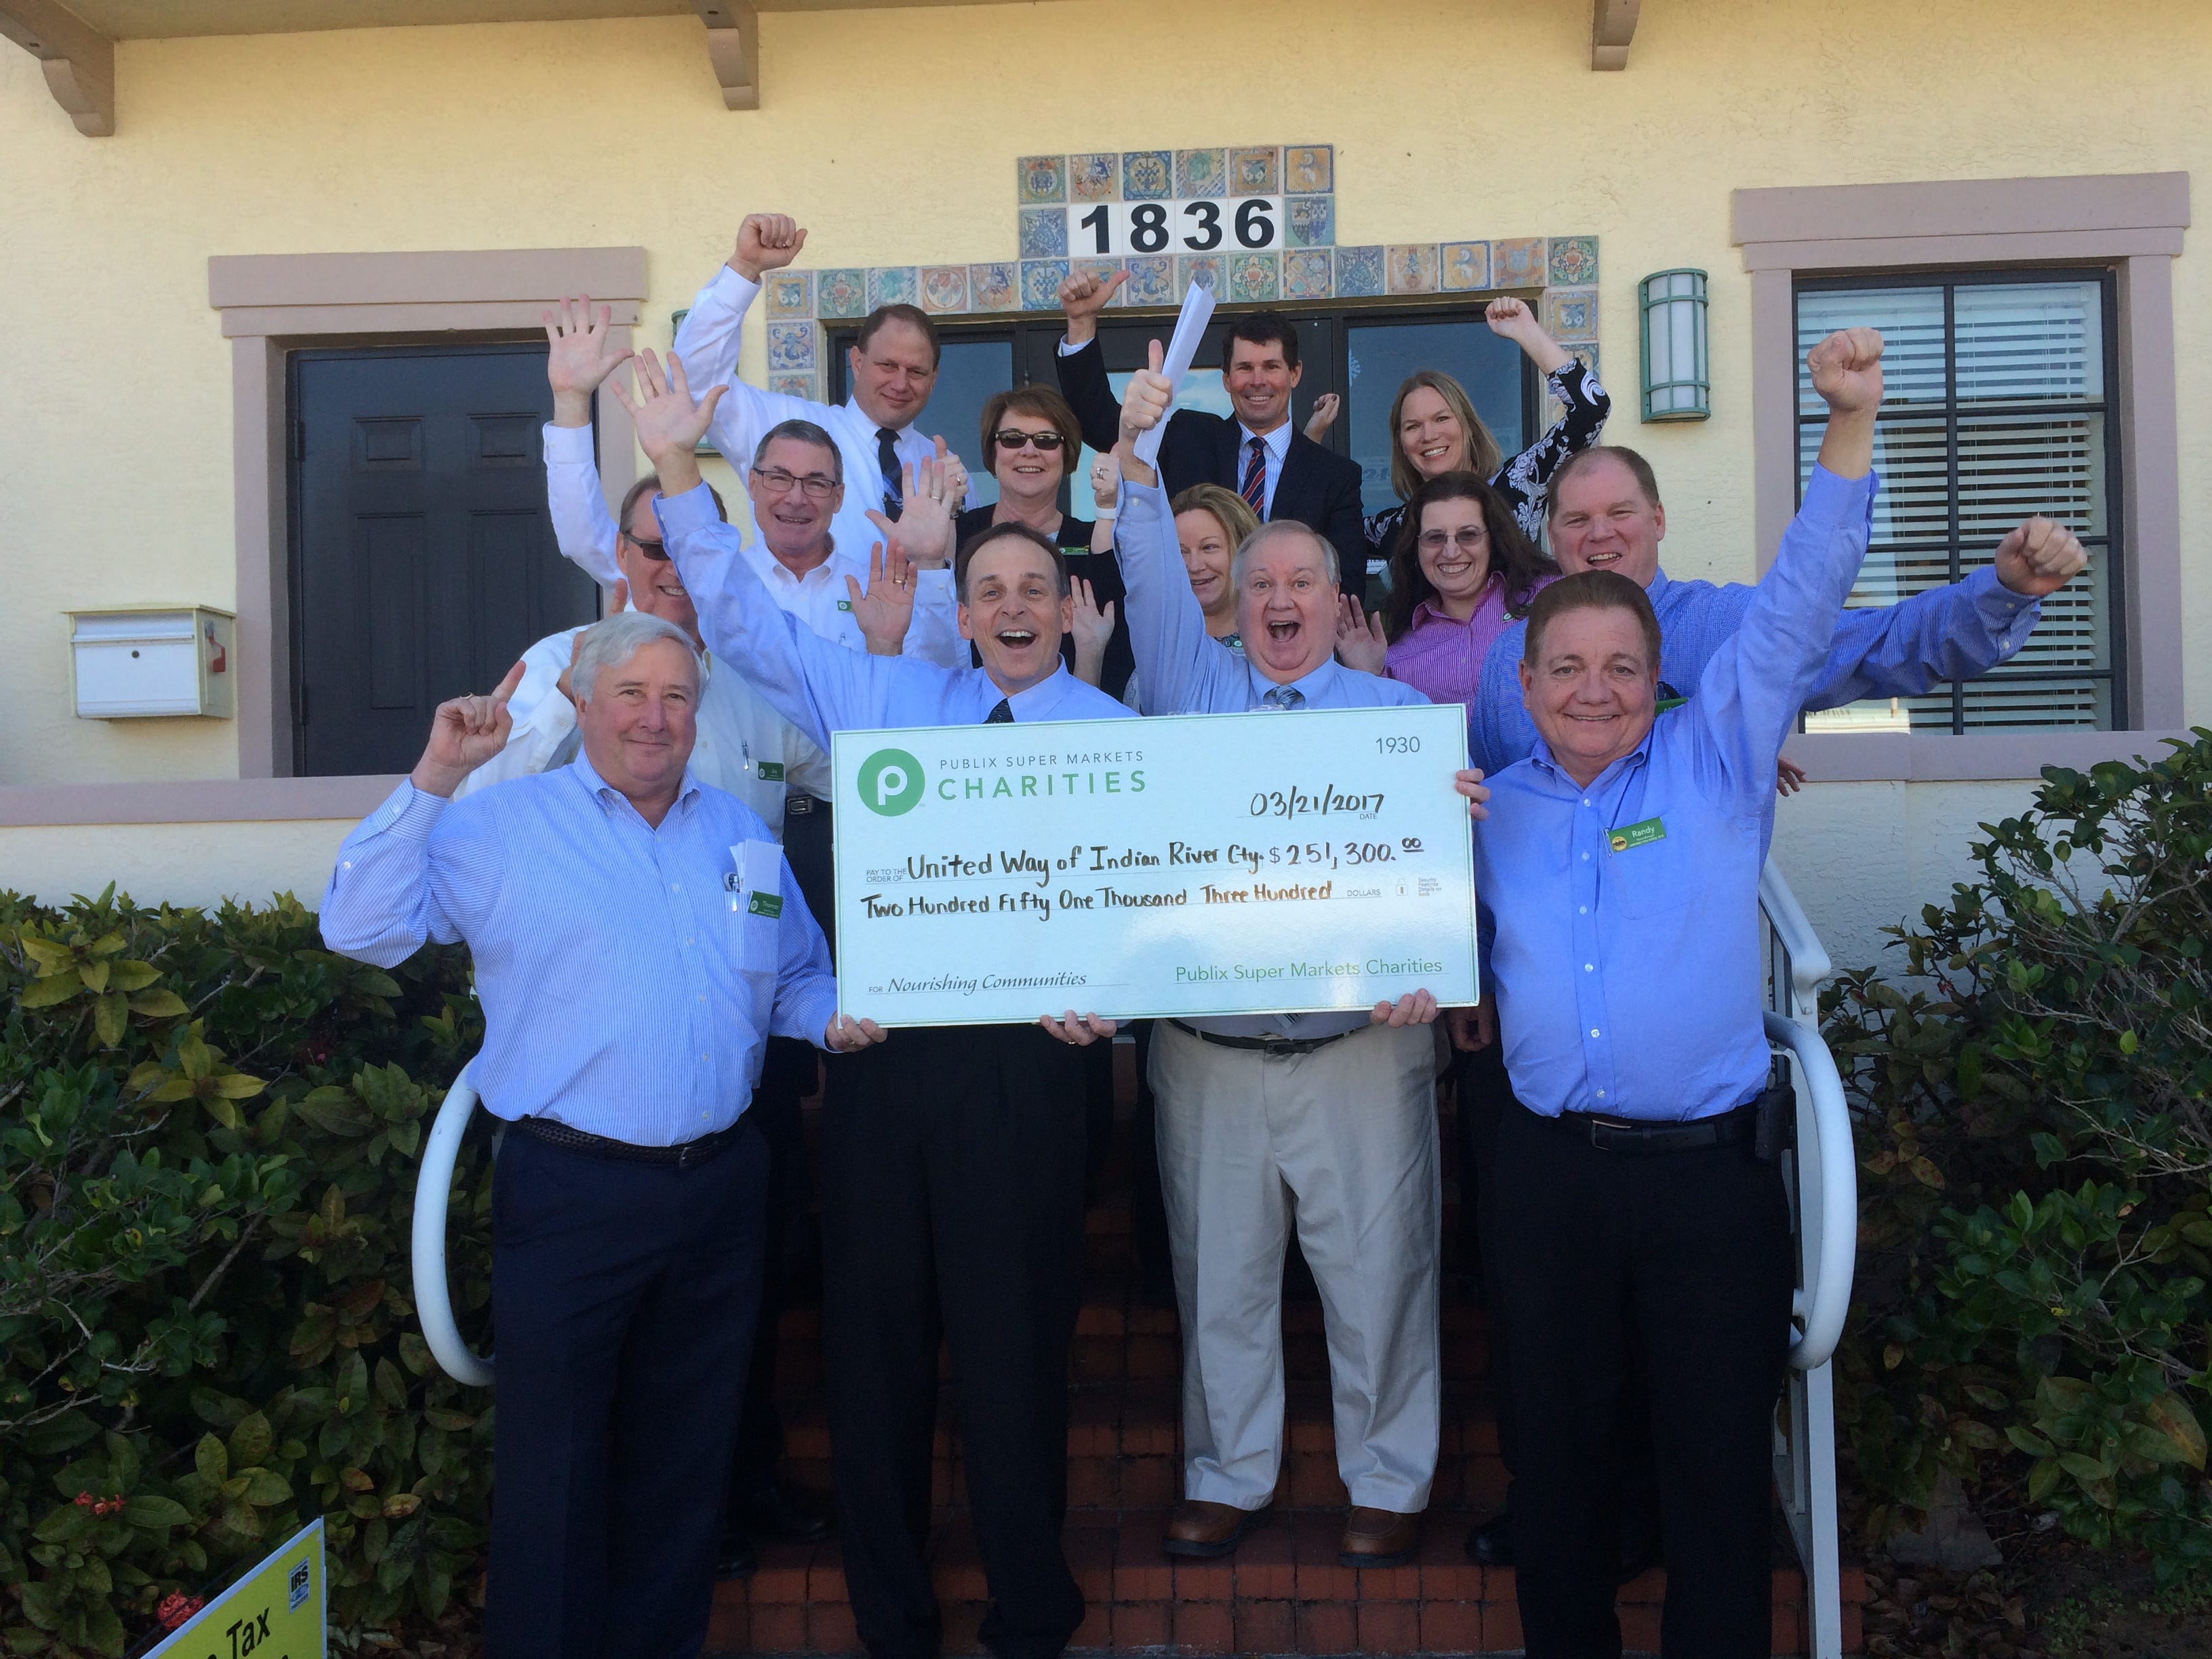 Publix Super Market Charities donated $251,300 to the United Way of Indian River County in 2017. Here, United Way and Publix staff celebrate the end of the 2016-17 campaign.